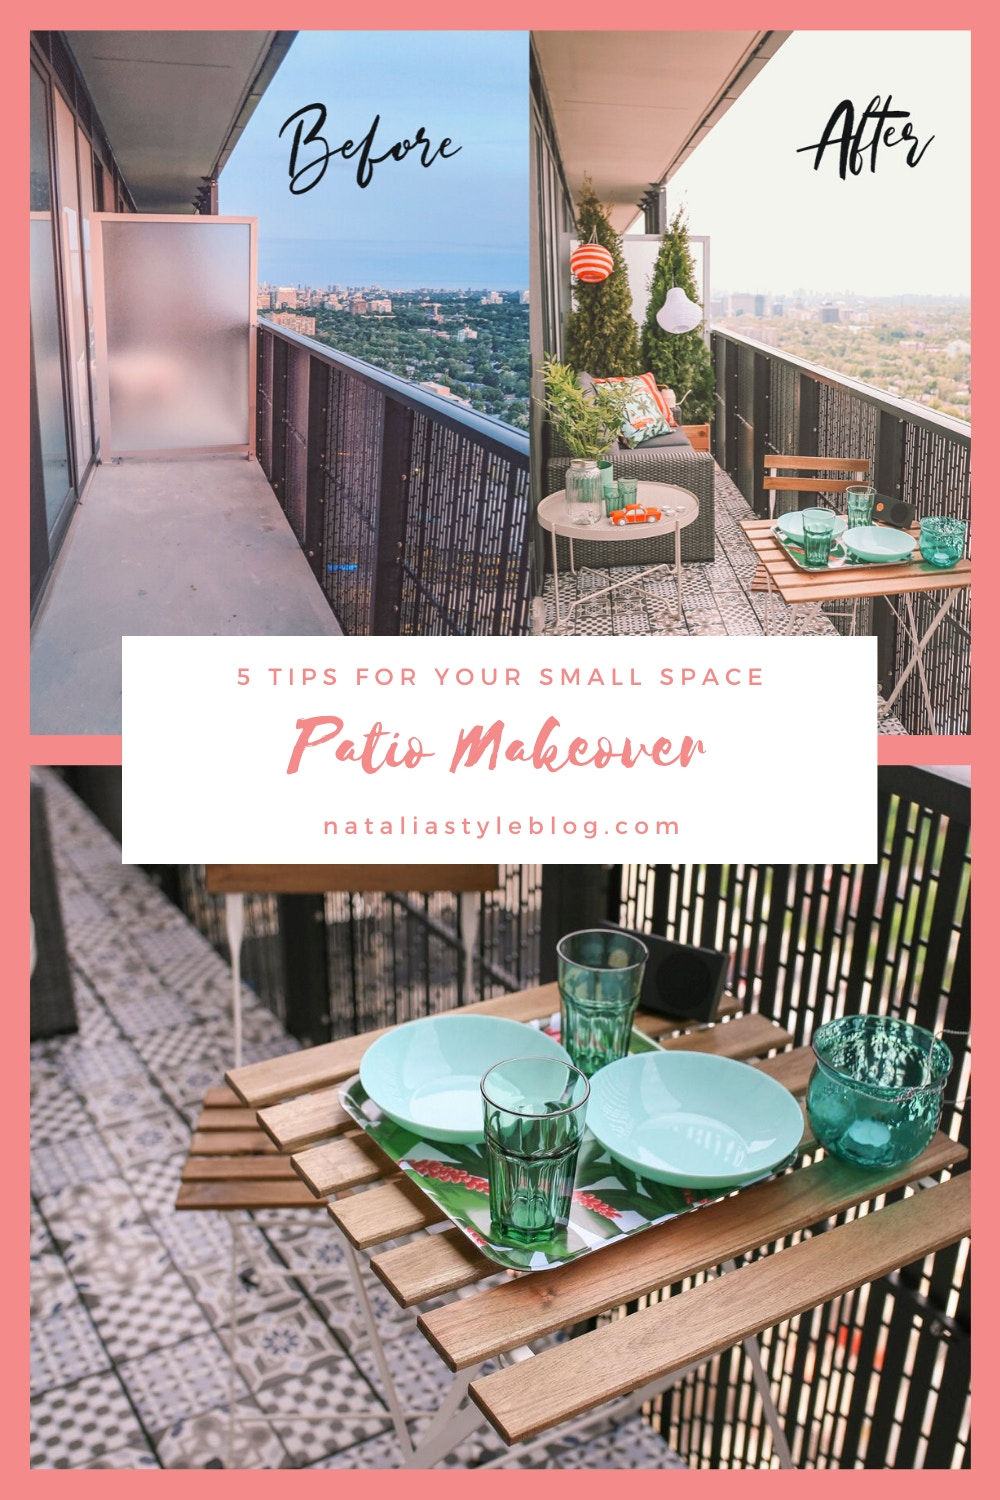 5 Tips for your Balcony Makeover: I'm sharing my design tips to help you transform your small outdoor space into a chic oasis in the sky! I'm also sharing in-depth reviews of the IKEA Solleron series outdoor sofas and the new tile Mallsten Decking.